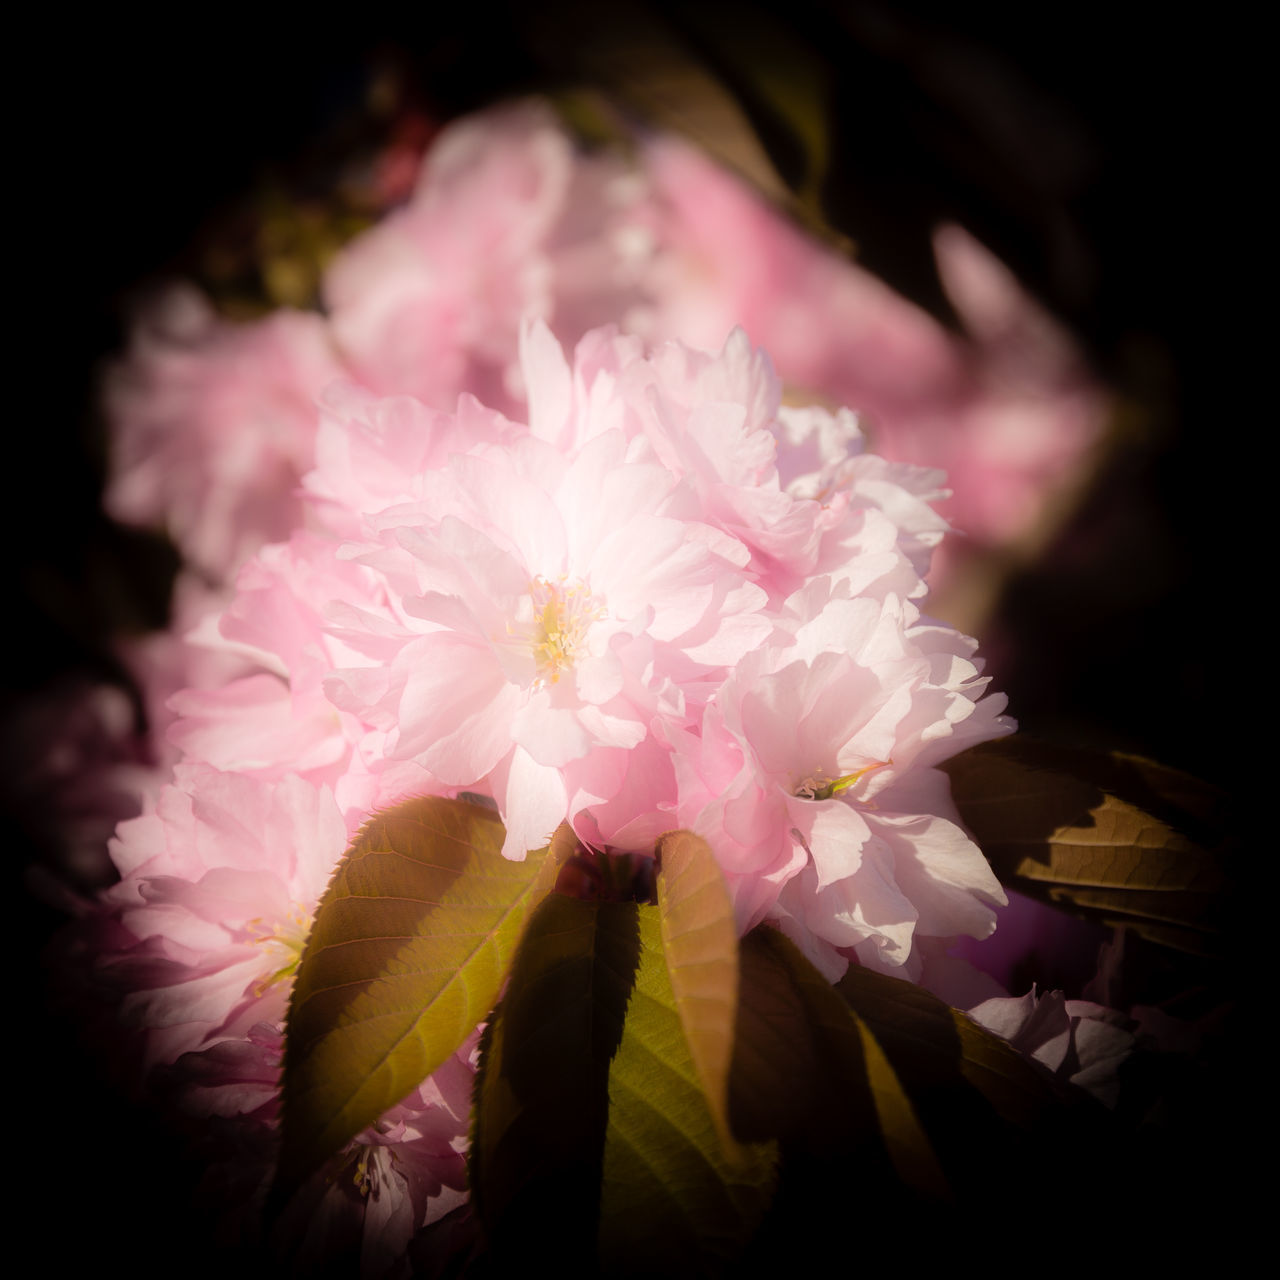 flower, pink color, petal, beauty in nature, flower head, nature, fragility, close-up, freshness, no people, growth, outdoors, day